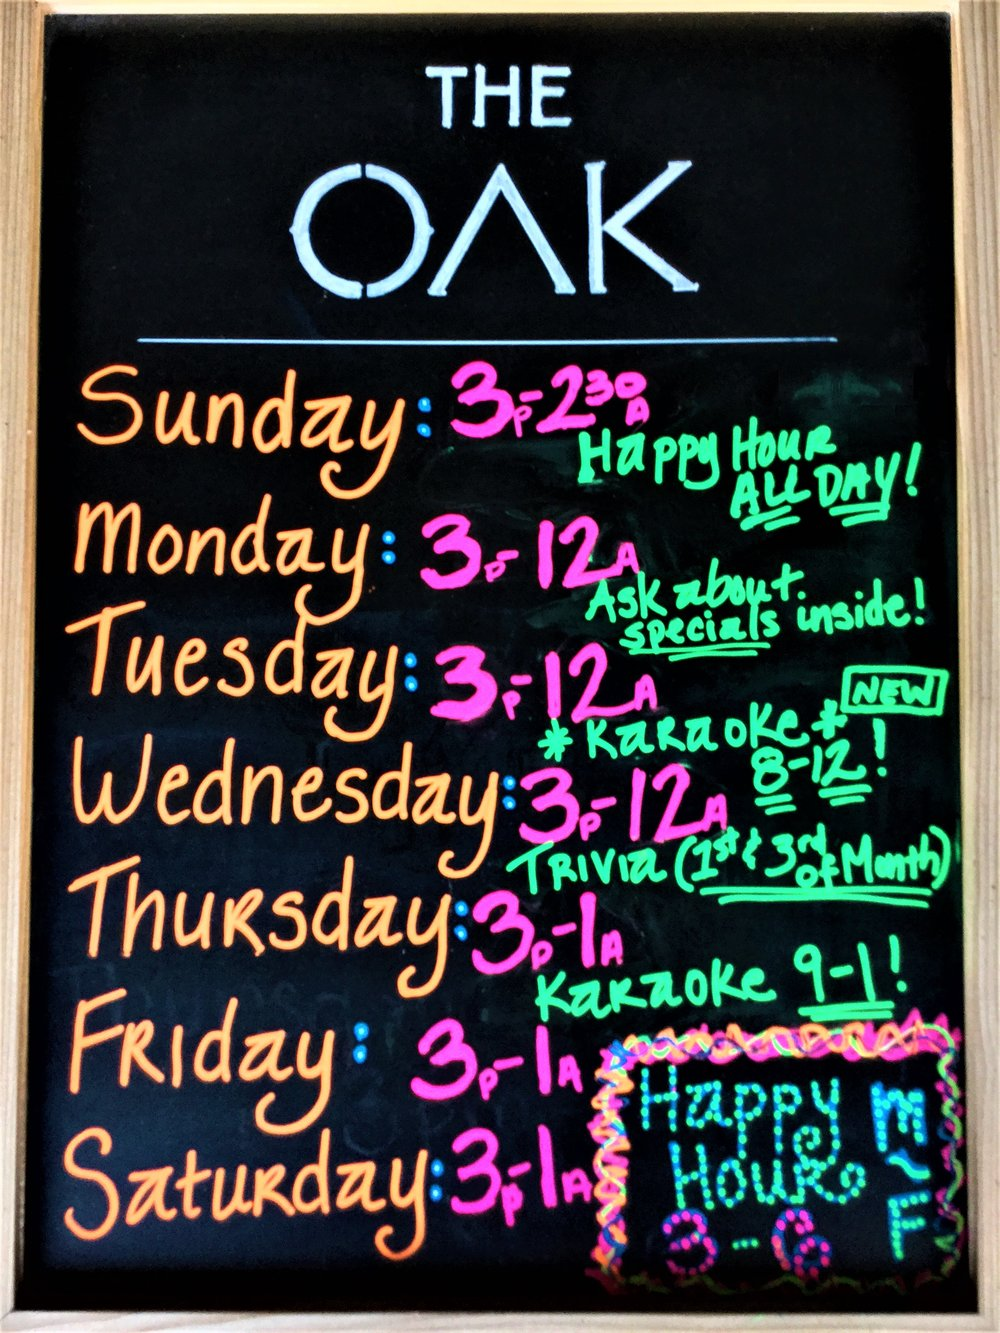 The Oak Daily Events.JPG